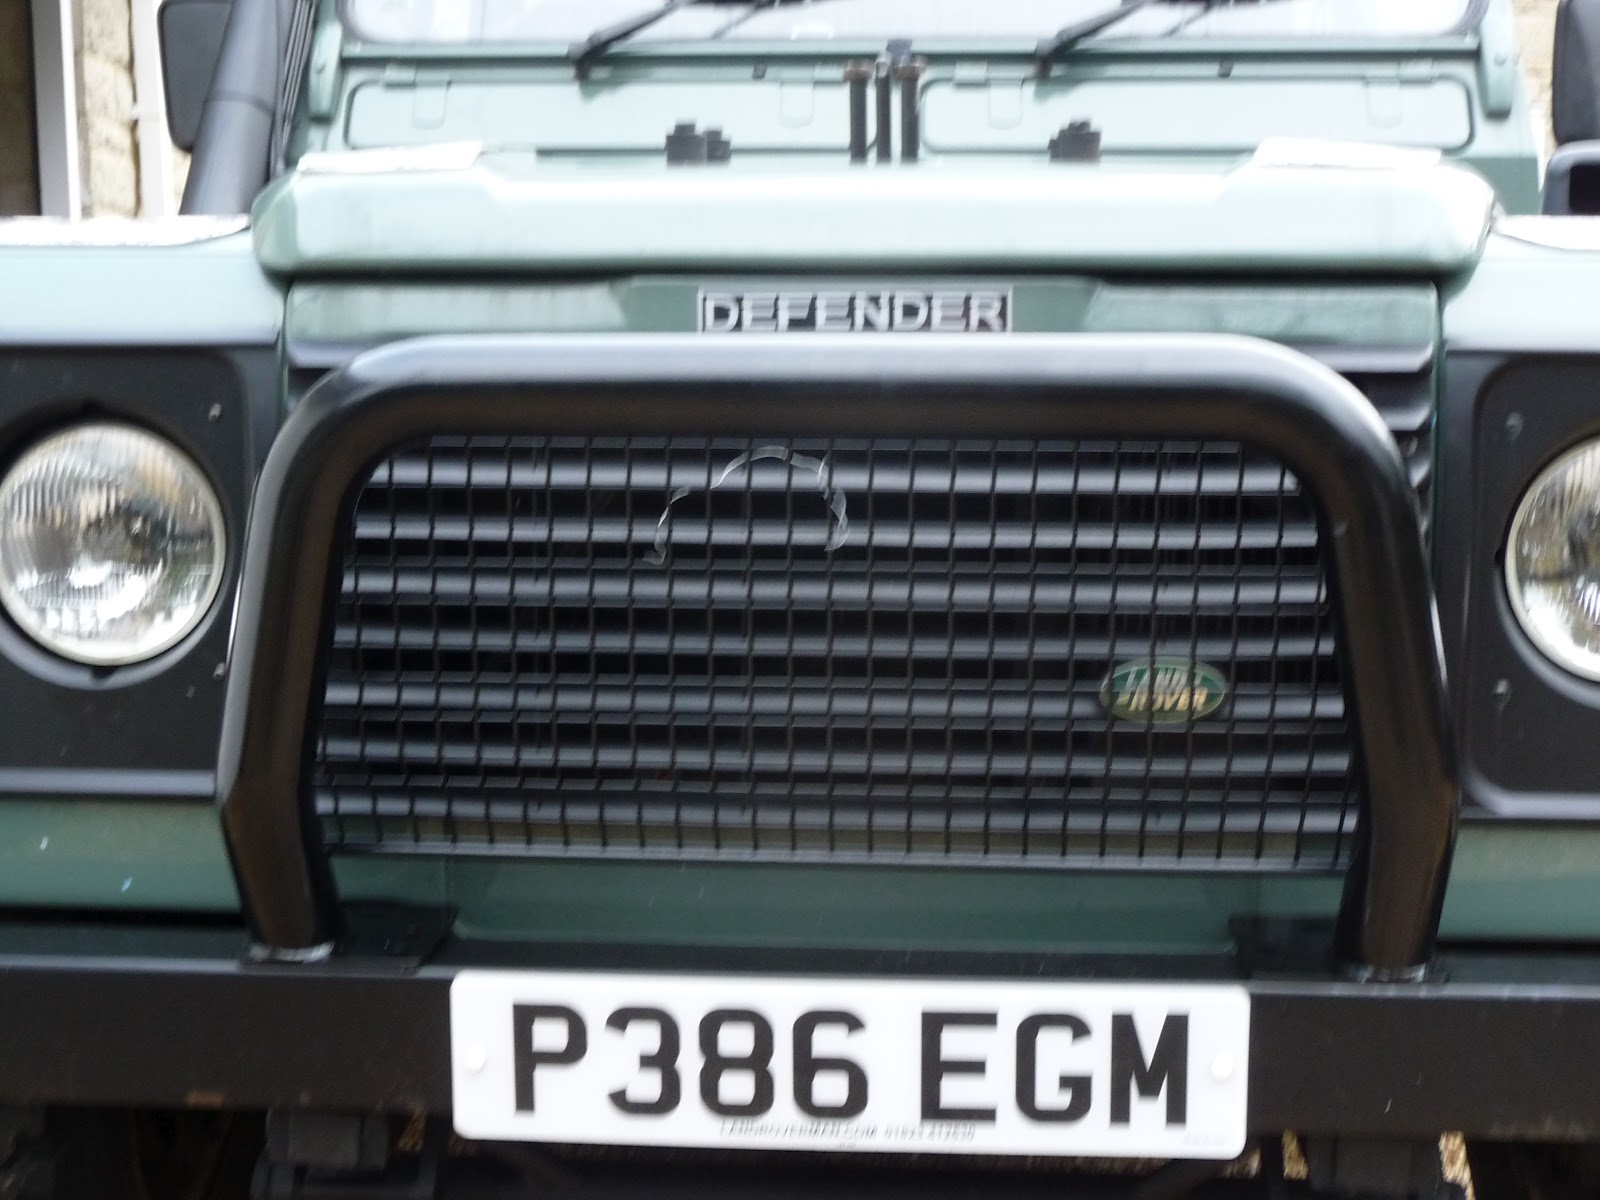 Landrover Details Land Rover Defender Auxiliary Fuse Box Devon 4x4 Tree Sliders Ideal For Side Protection In The Event Of A Crash